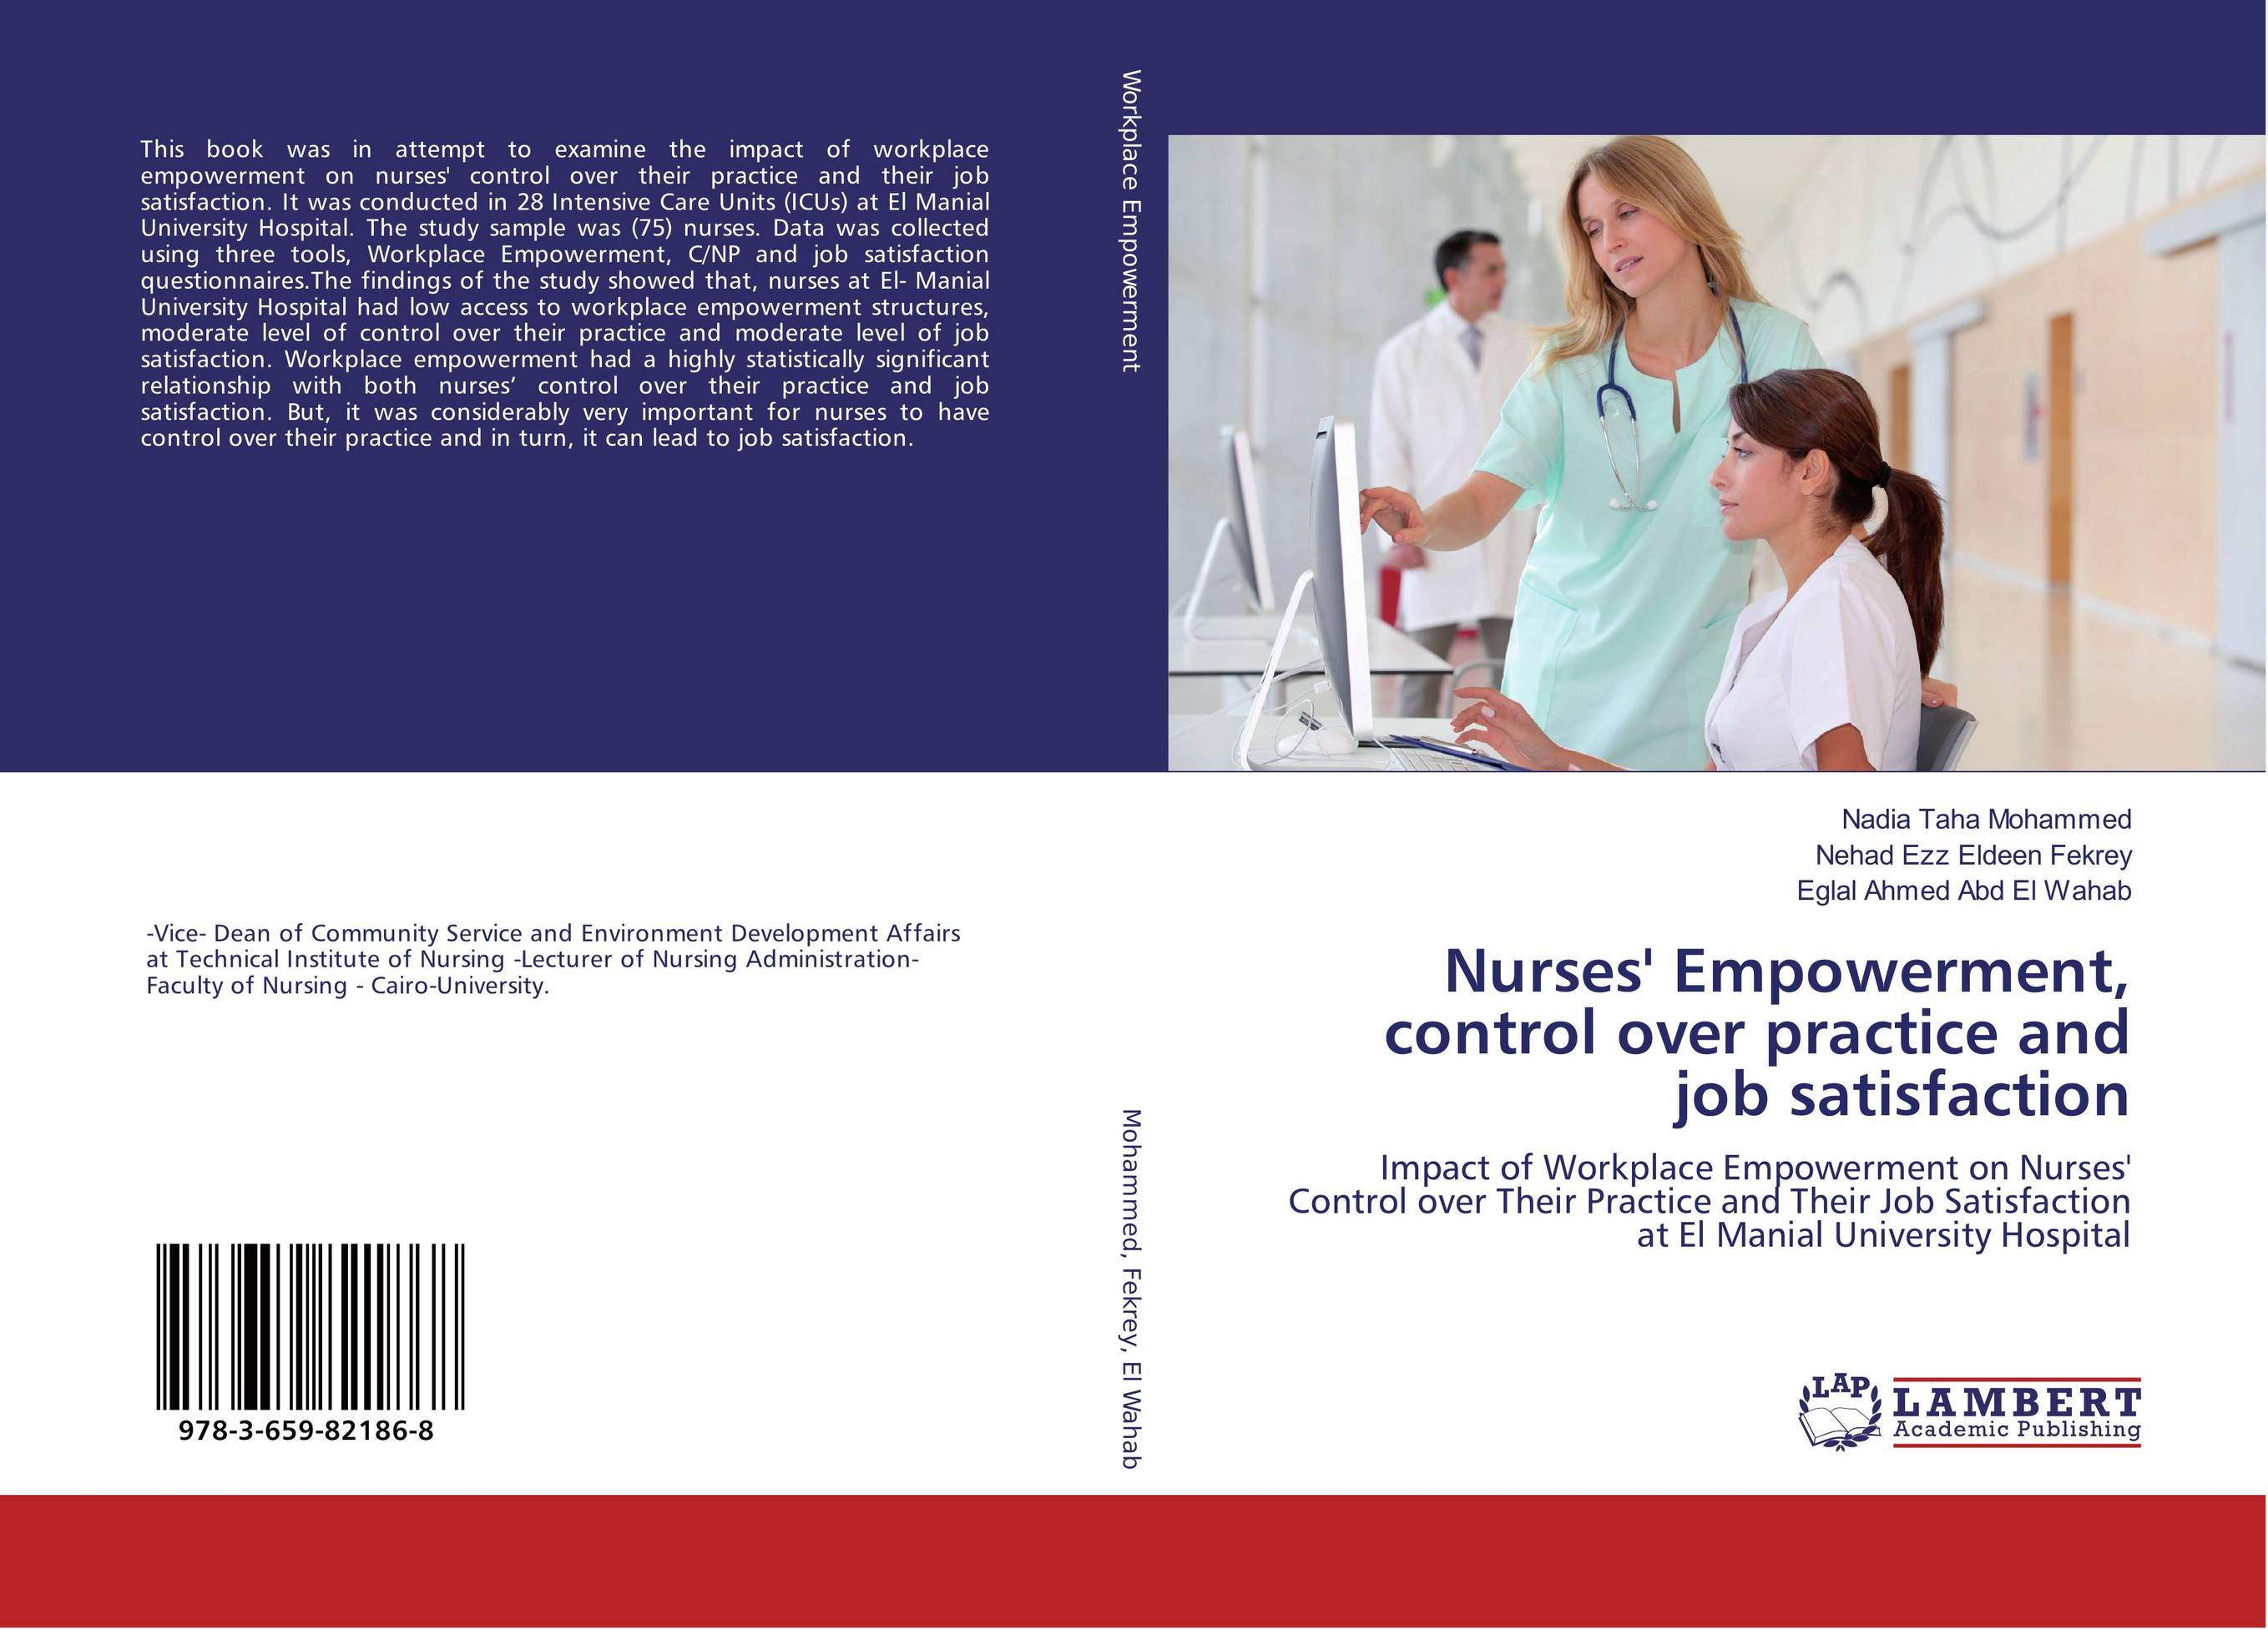 Nurses' Empowerment, control over practice and job satisfaction the impact of nurse empowerment on job satisfaction